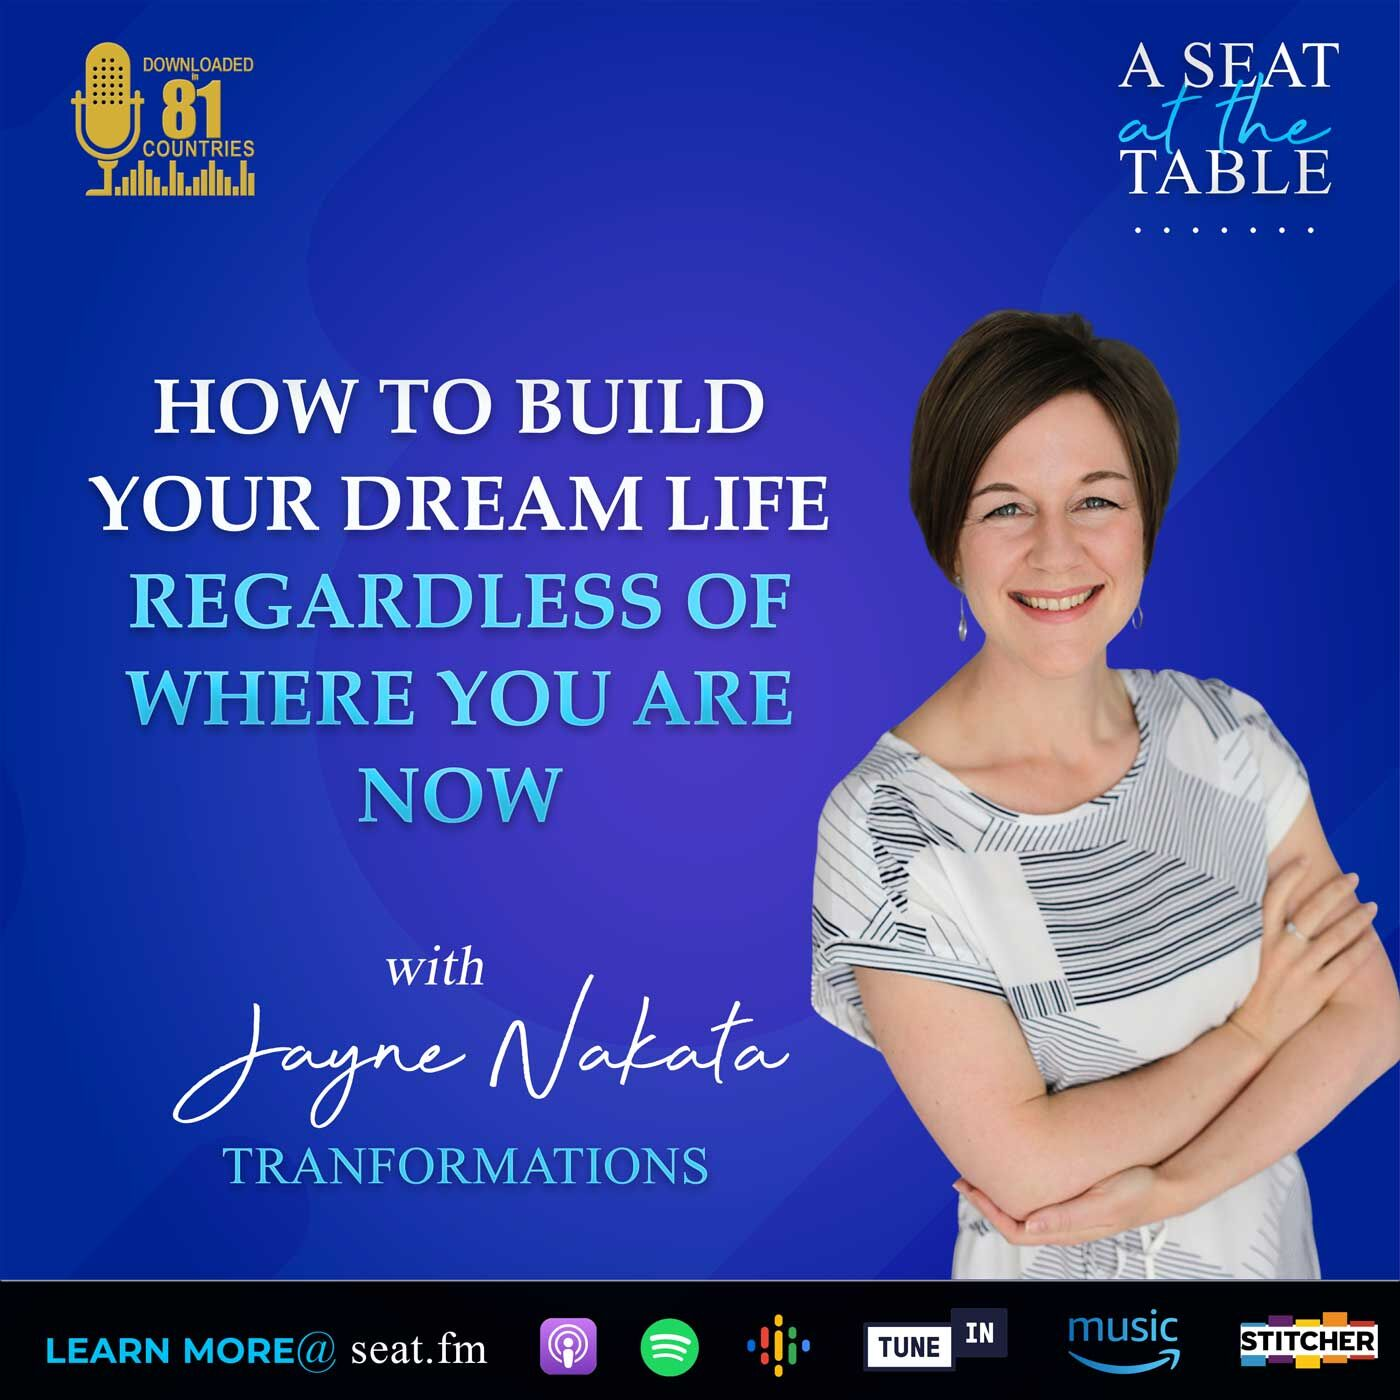 How to Start Building Your Dream Life - Regardless of Where You are Now